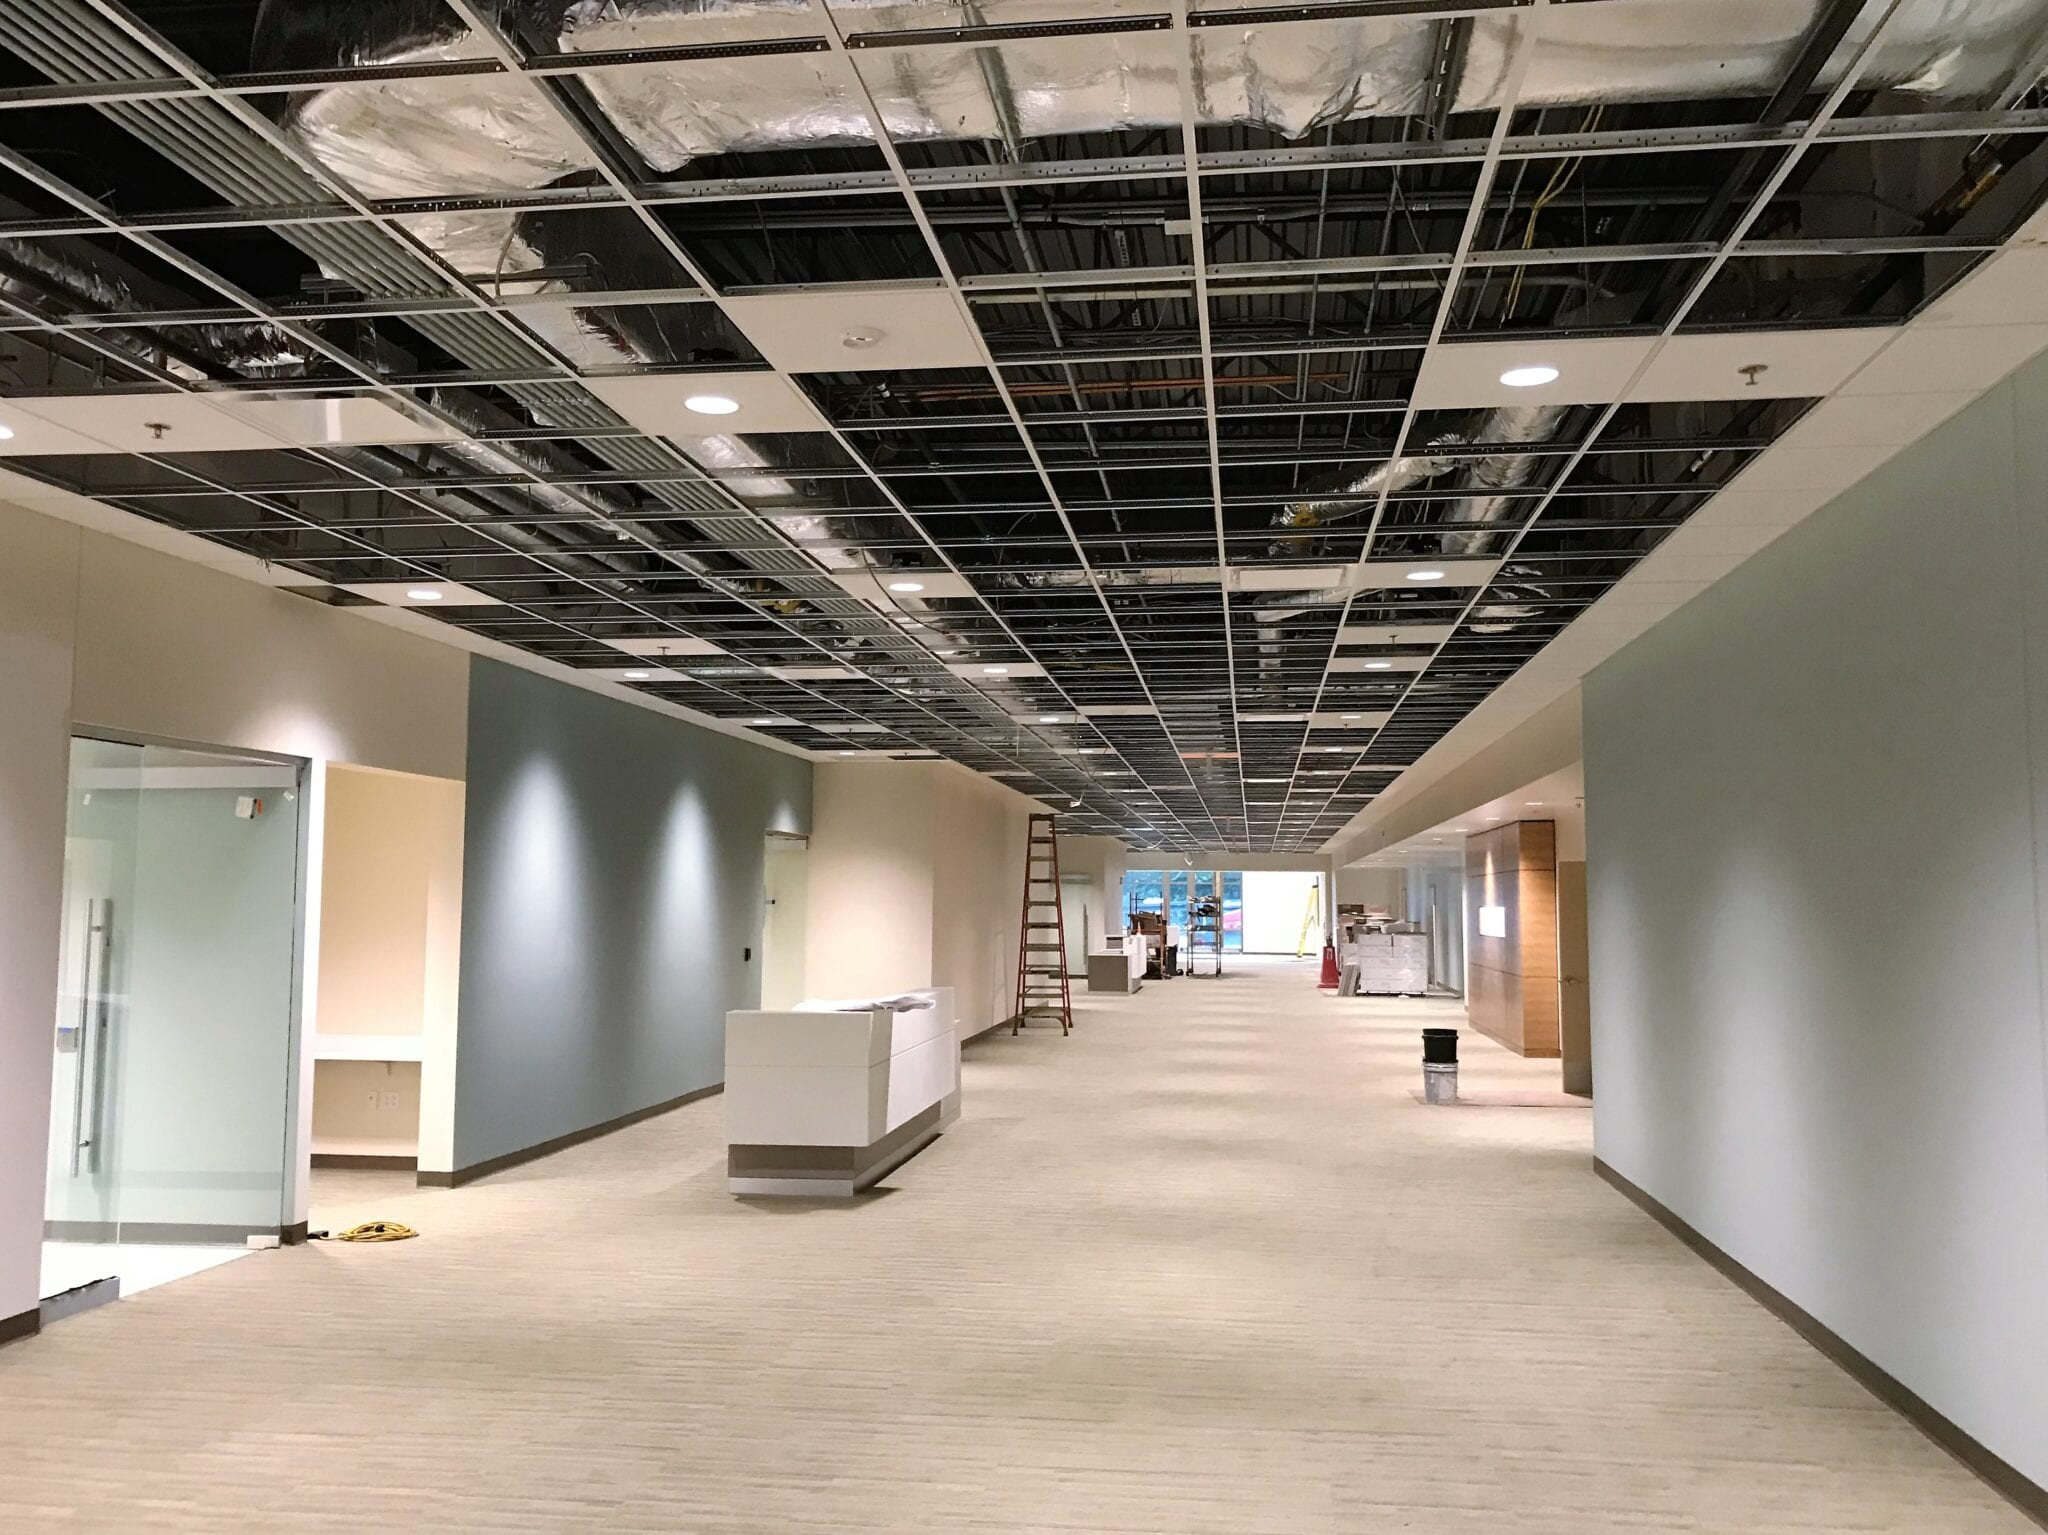 mercy branson clinic interior ceiling